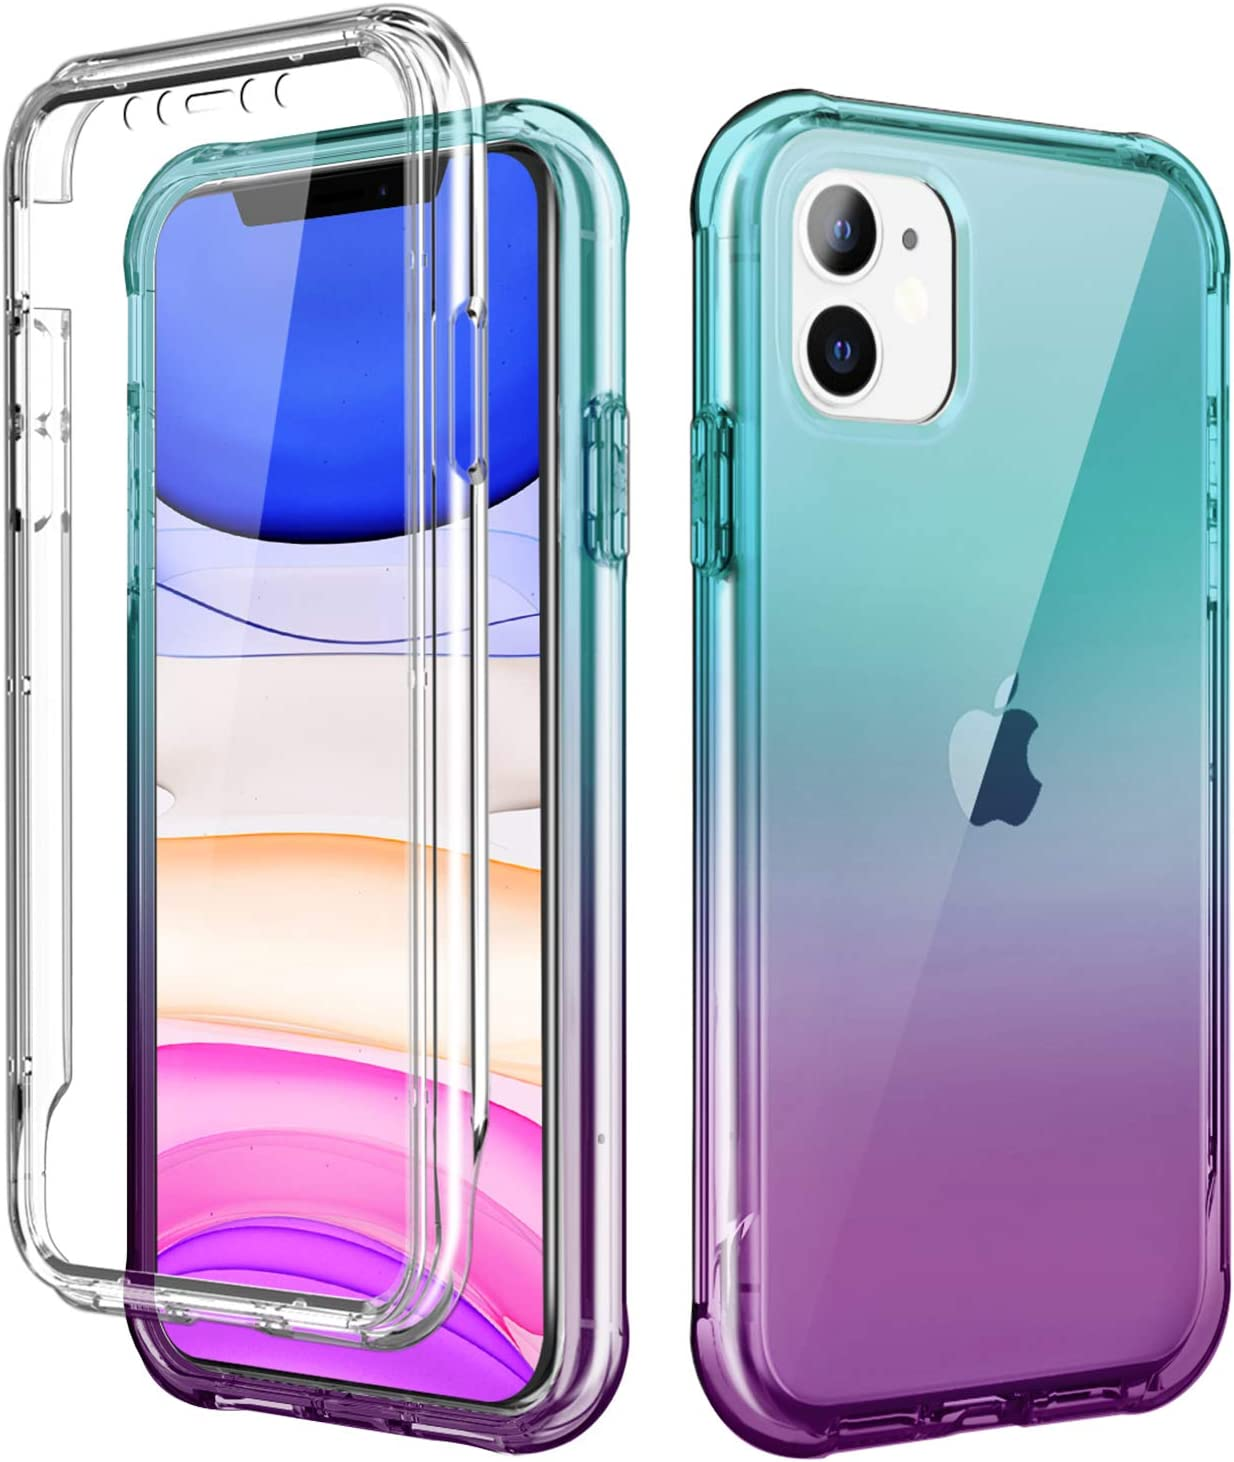 SKYLMW iPhone 11 Case 2019 6.1 inch,[Built in Screen Protector] Full Body Shockproof Dual Layer High Impact Protective Hard Plastic & TPU Phone Tough Cover Cases for Women Men,Blue-Violet Gradient